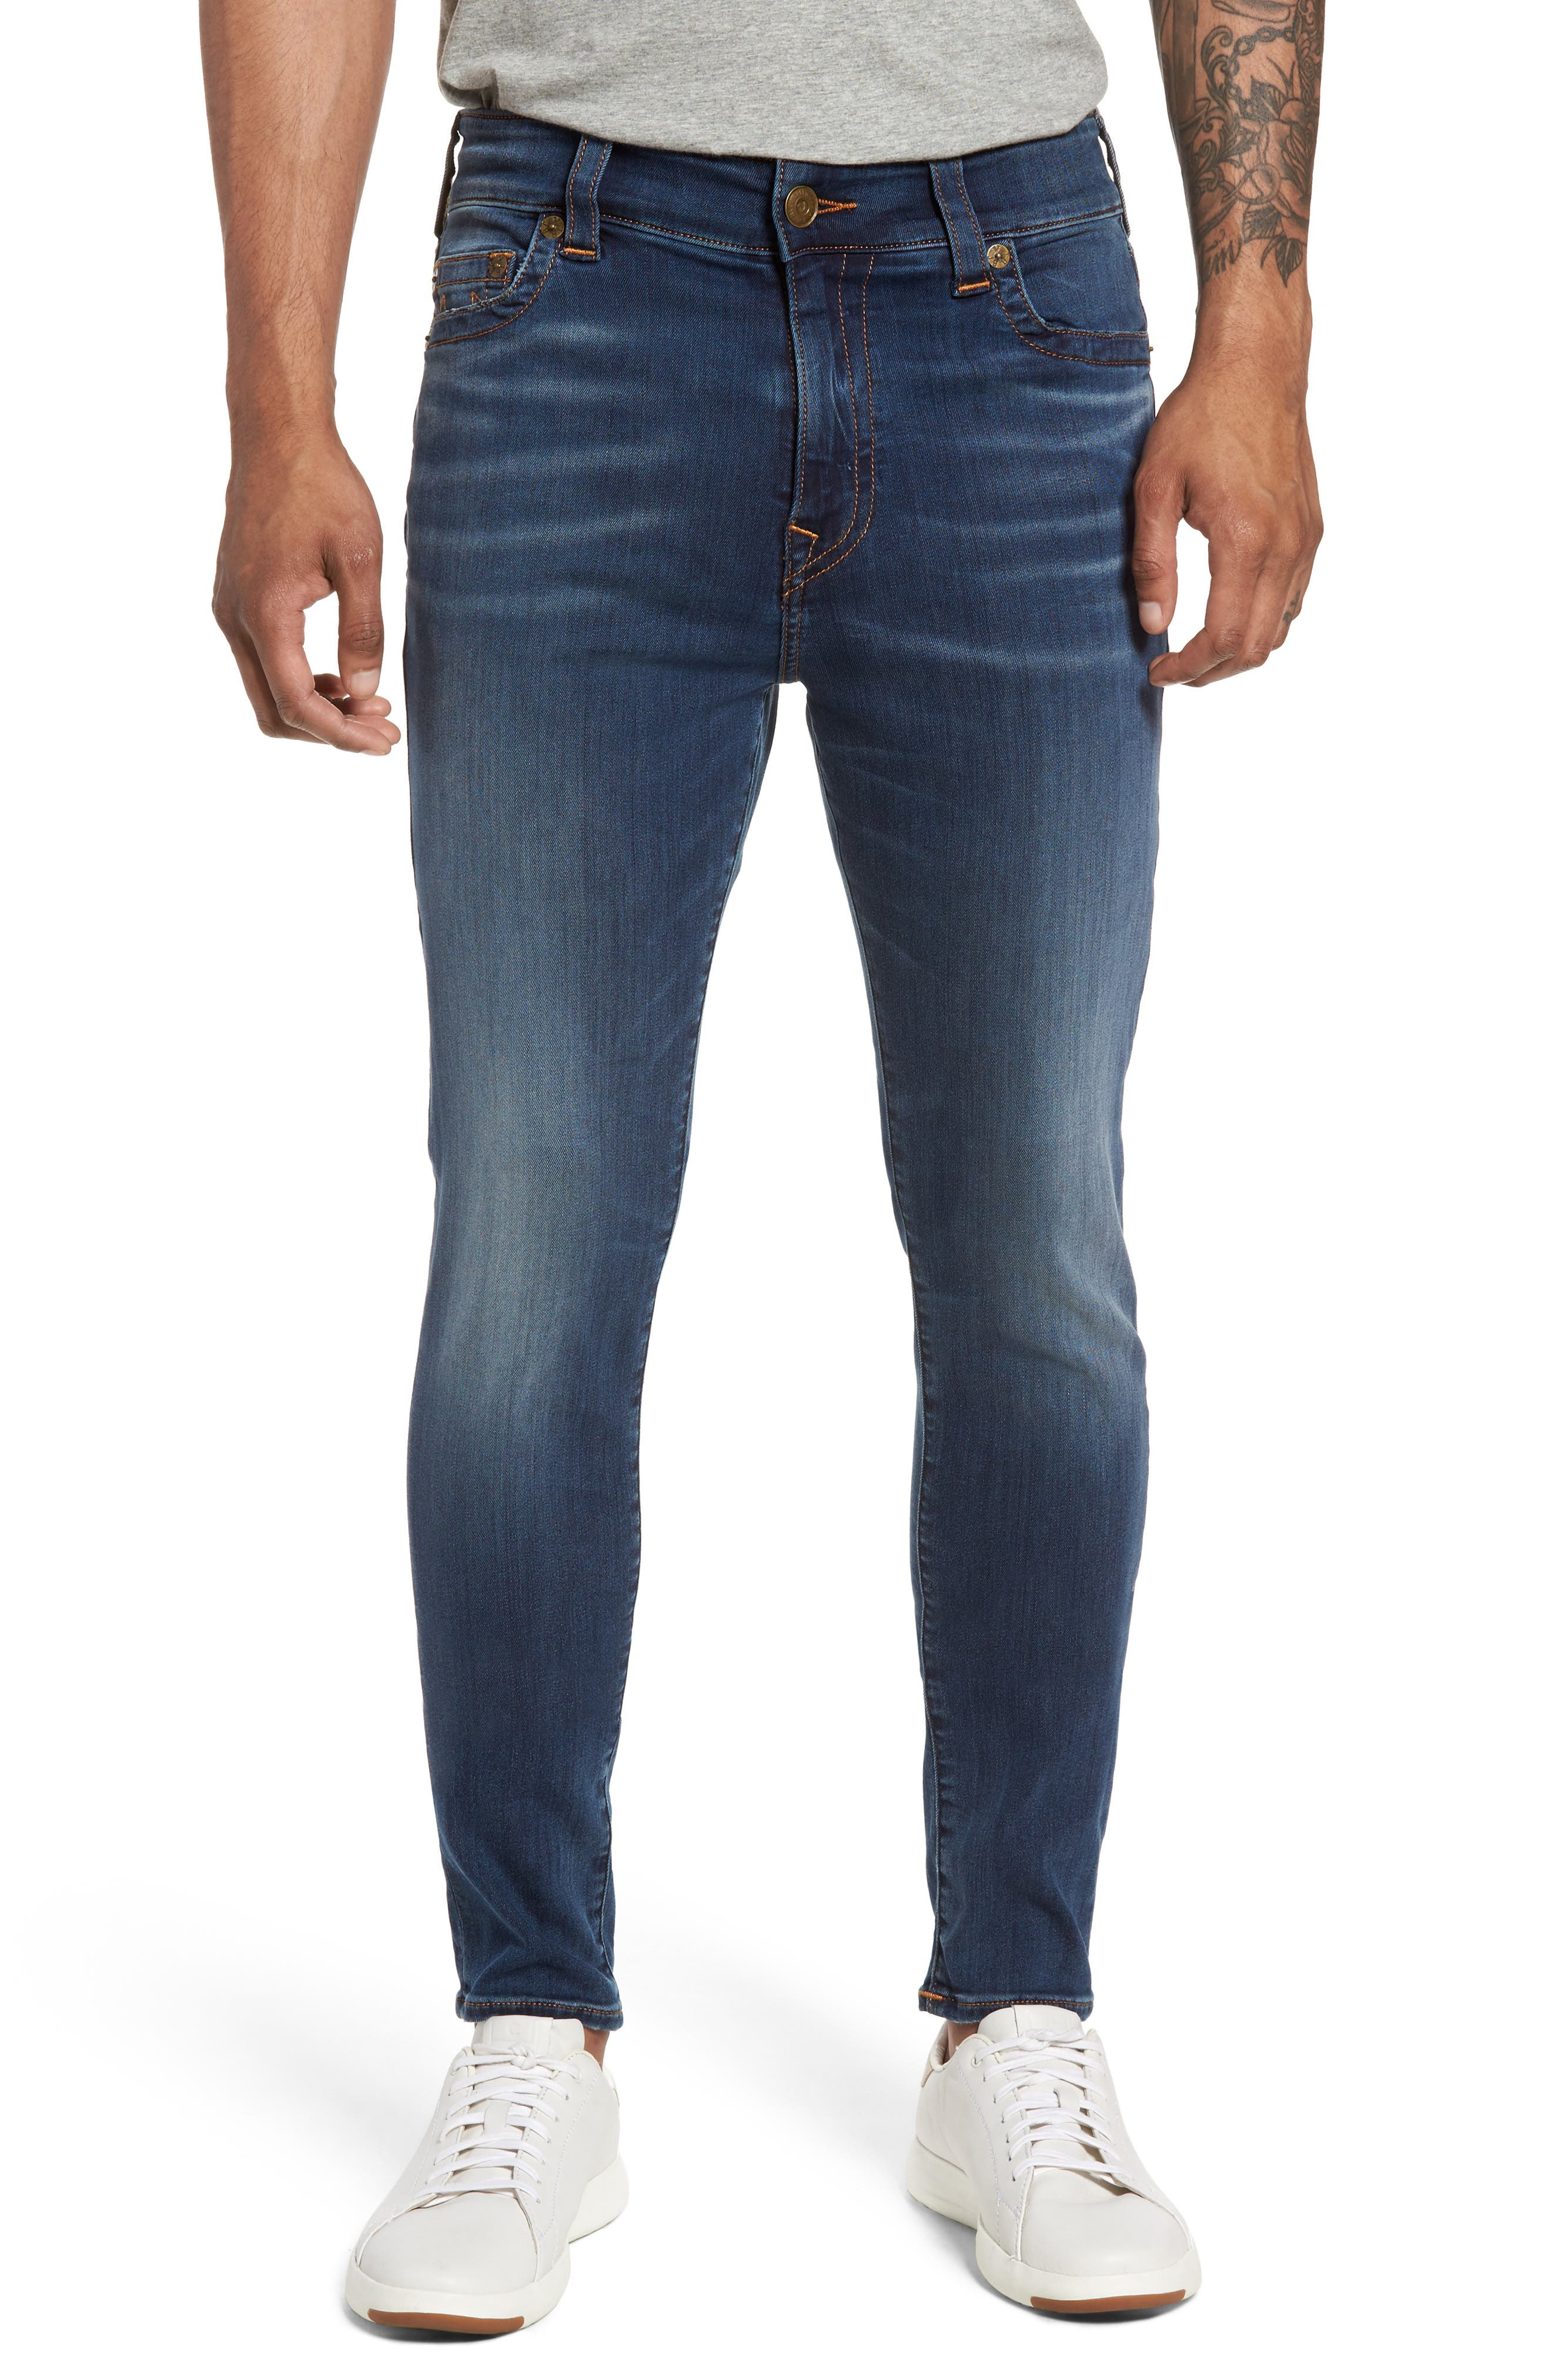 Jack Skinny Fit Jeans,                             Main thumbnail 1, color,                             402